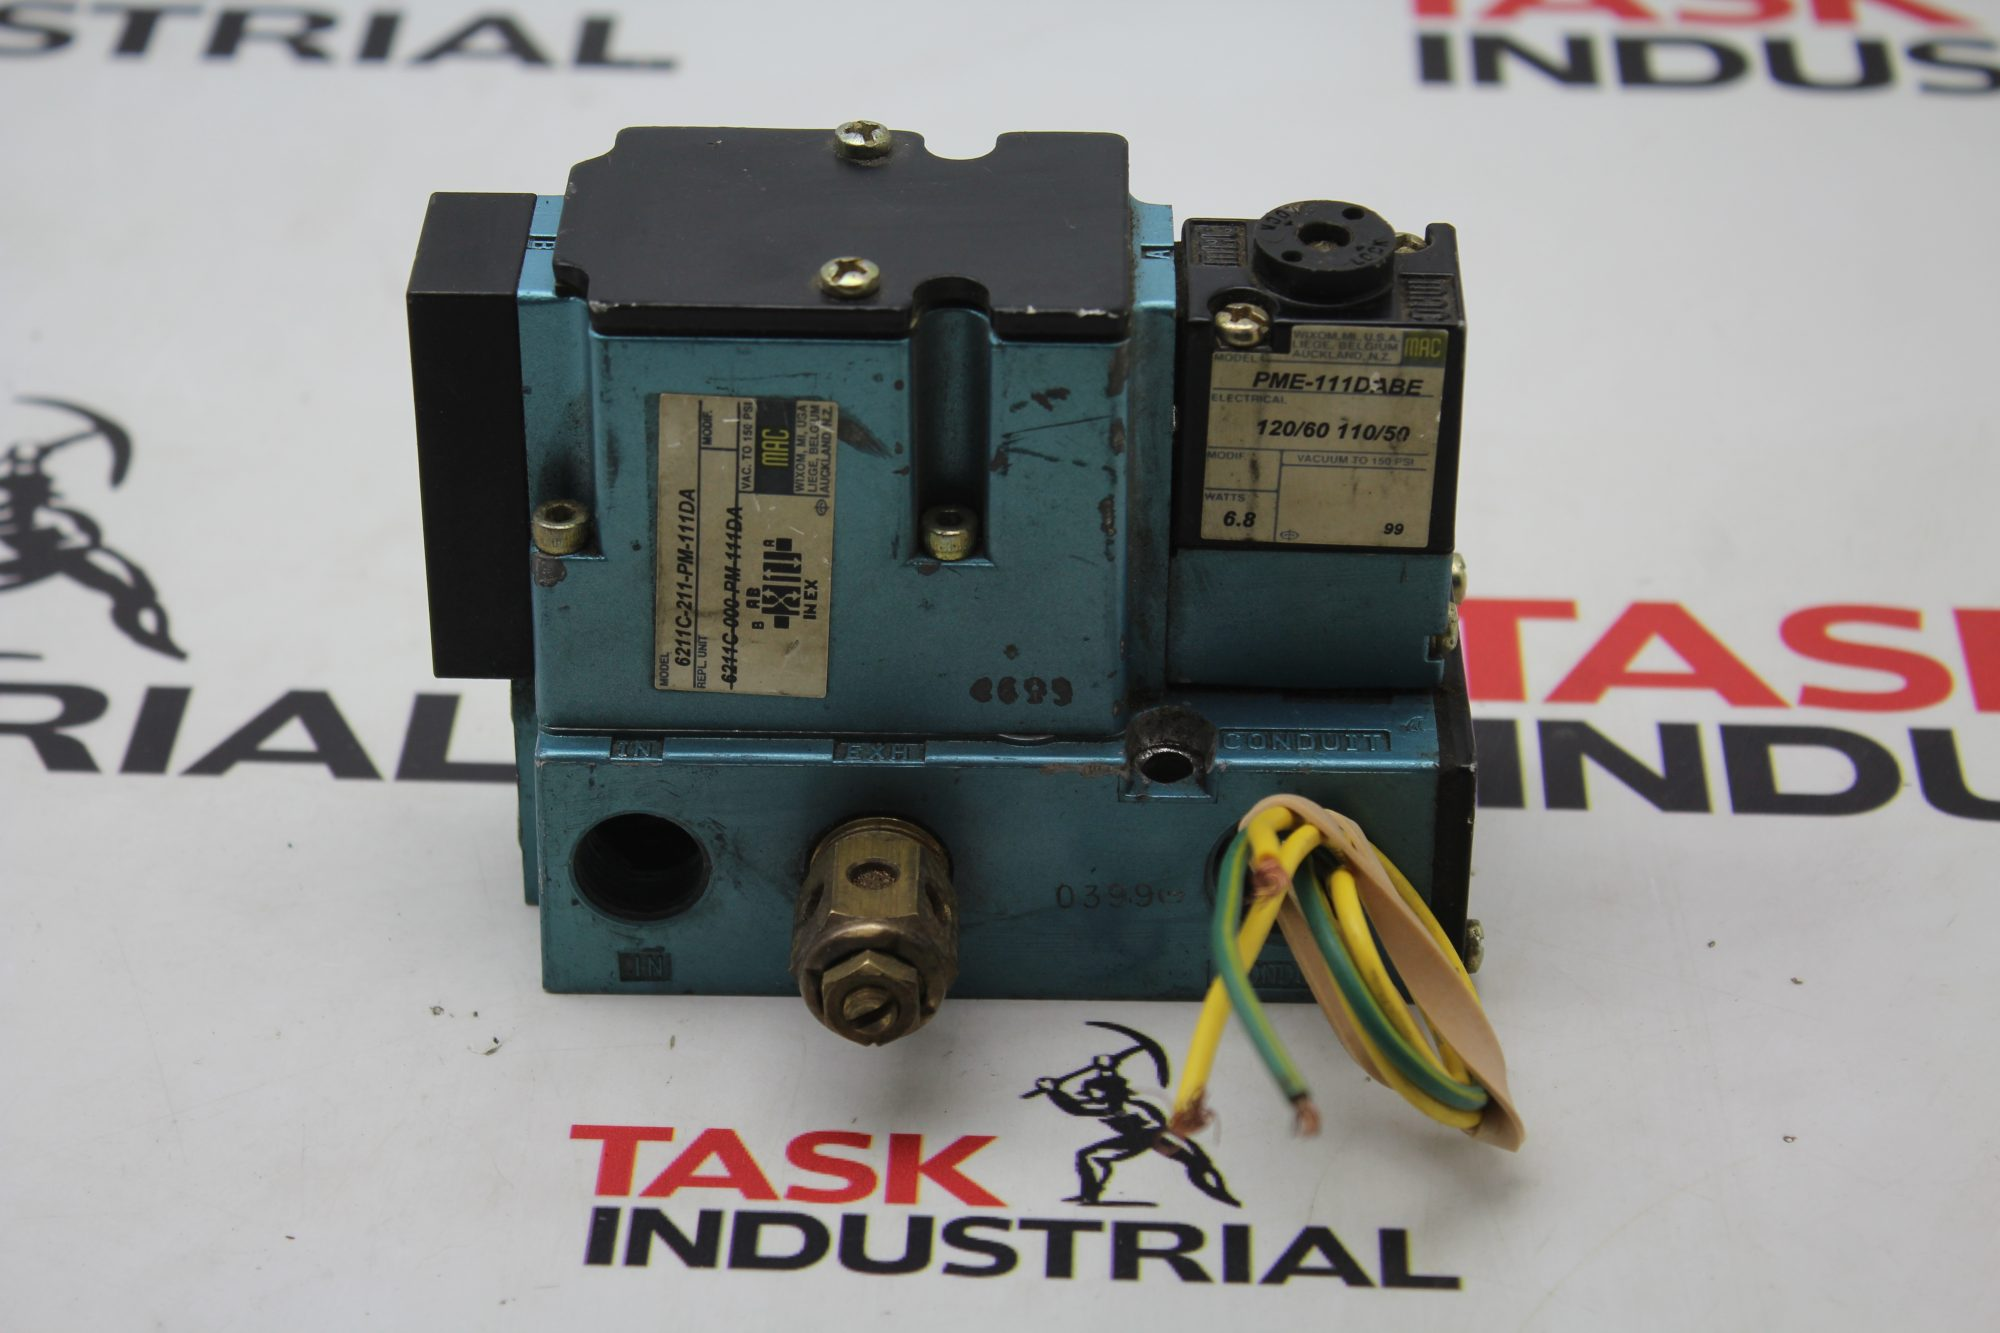 MAC Valve Model PME-11DABE 6200C-211